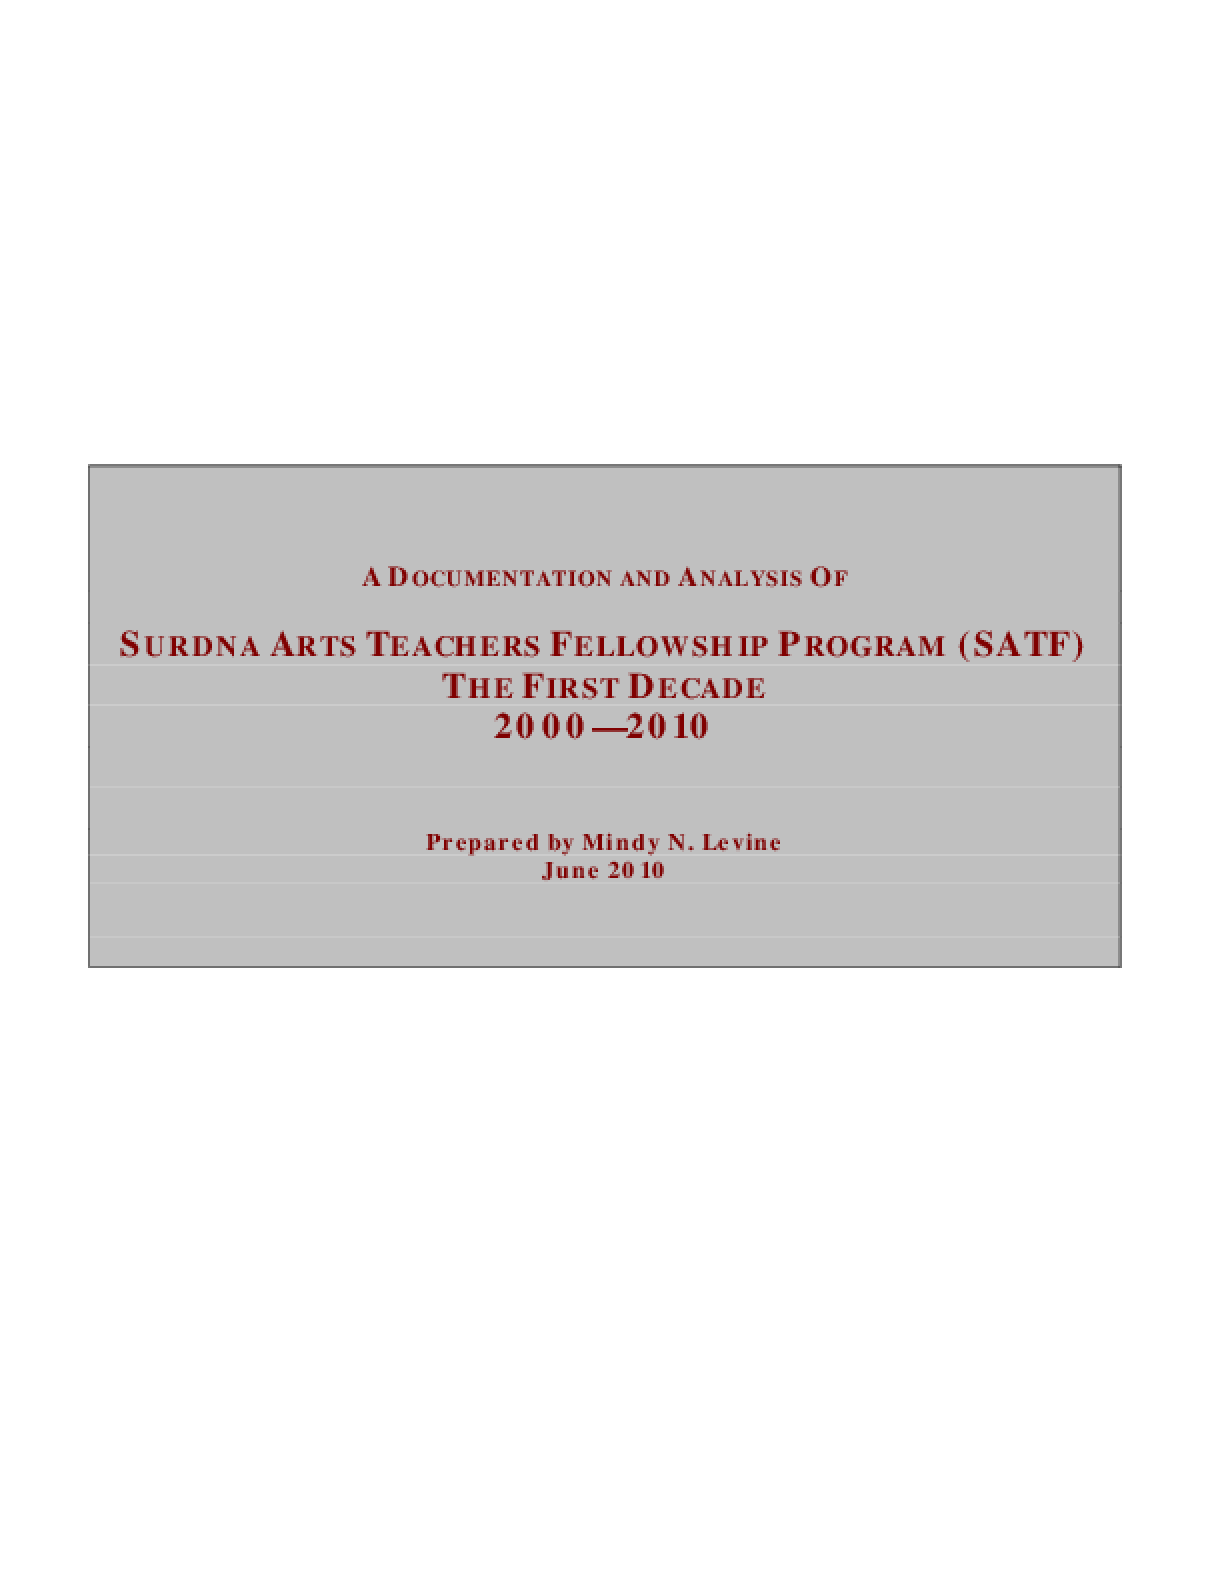 A Documentation and Analysis of Surdna Arts Teachers Fellowship Program (SATF): The First Decade 2000-2010